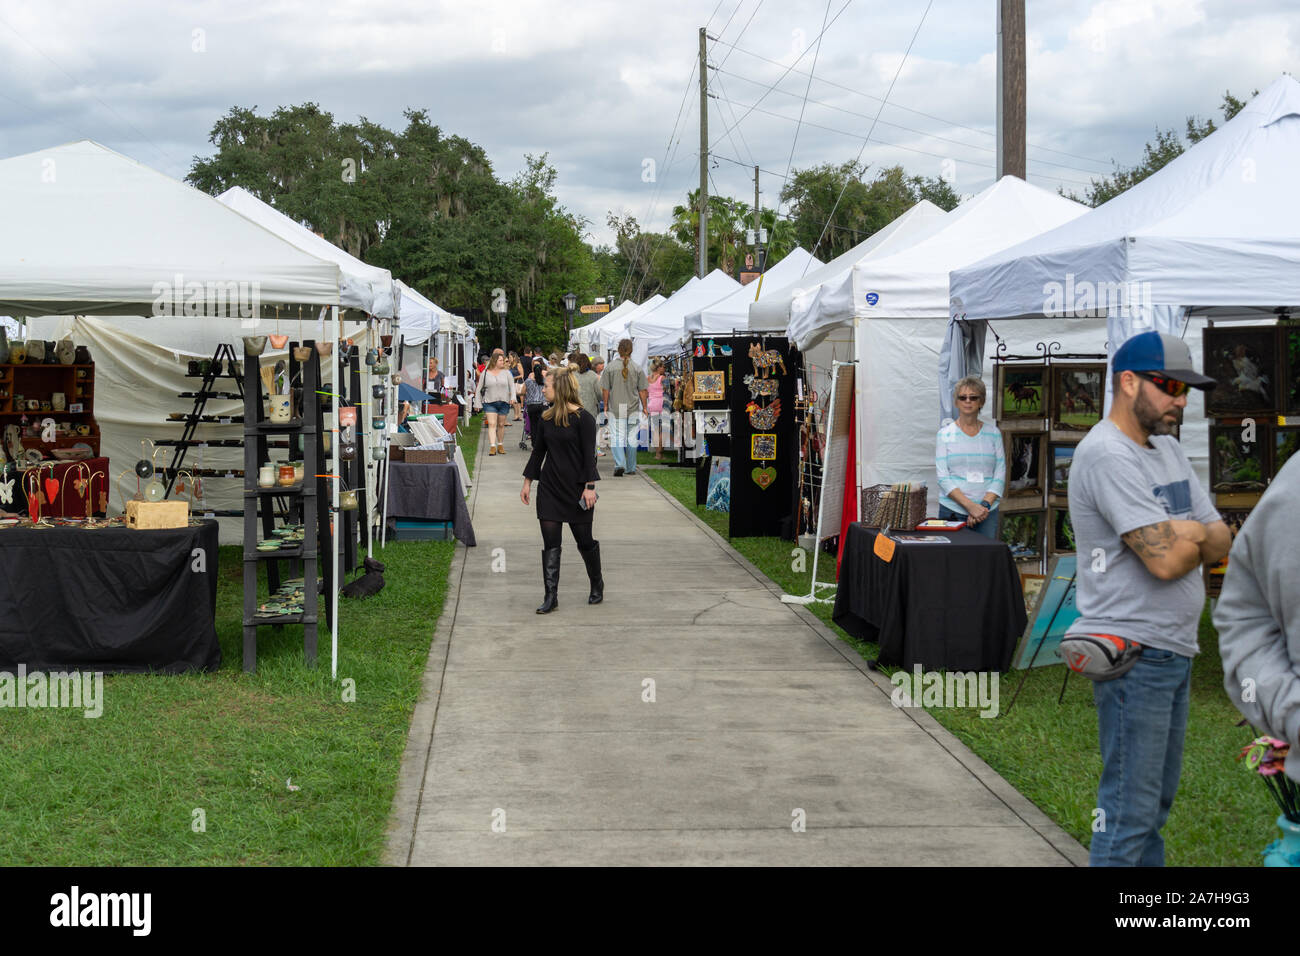 November 2 2019 Inverness Fl Exhibitors Line The Streets Of Courthouse Square In Downtown Inverness For The 49th Annual Festival Of The Arts Stock Photo Alamy